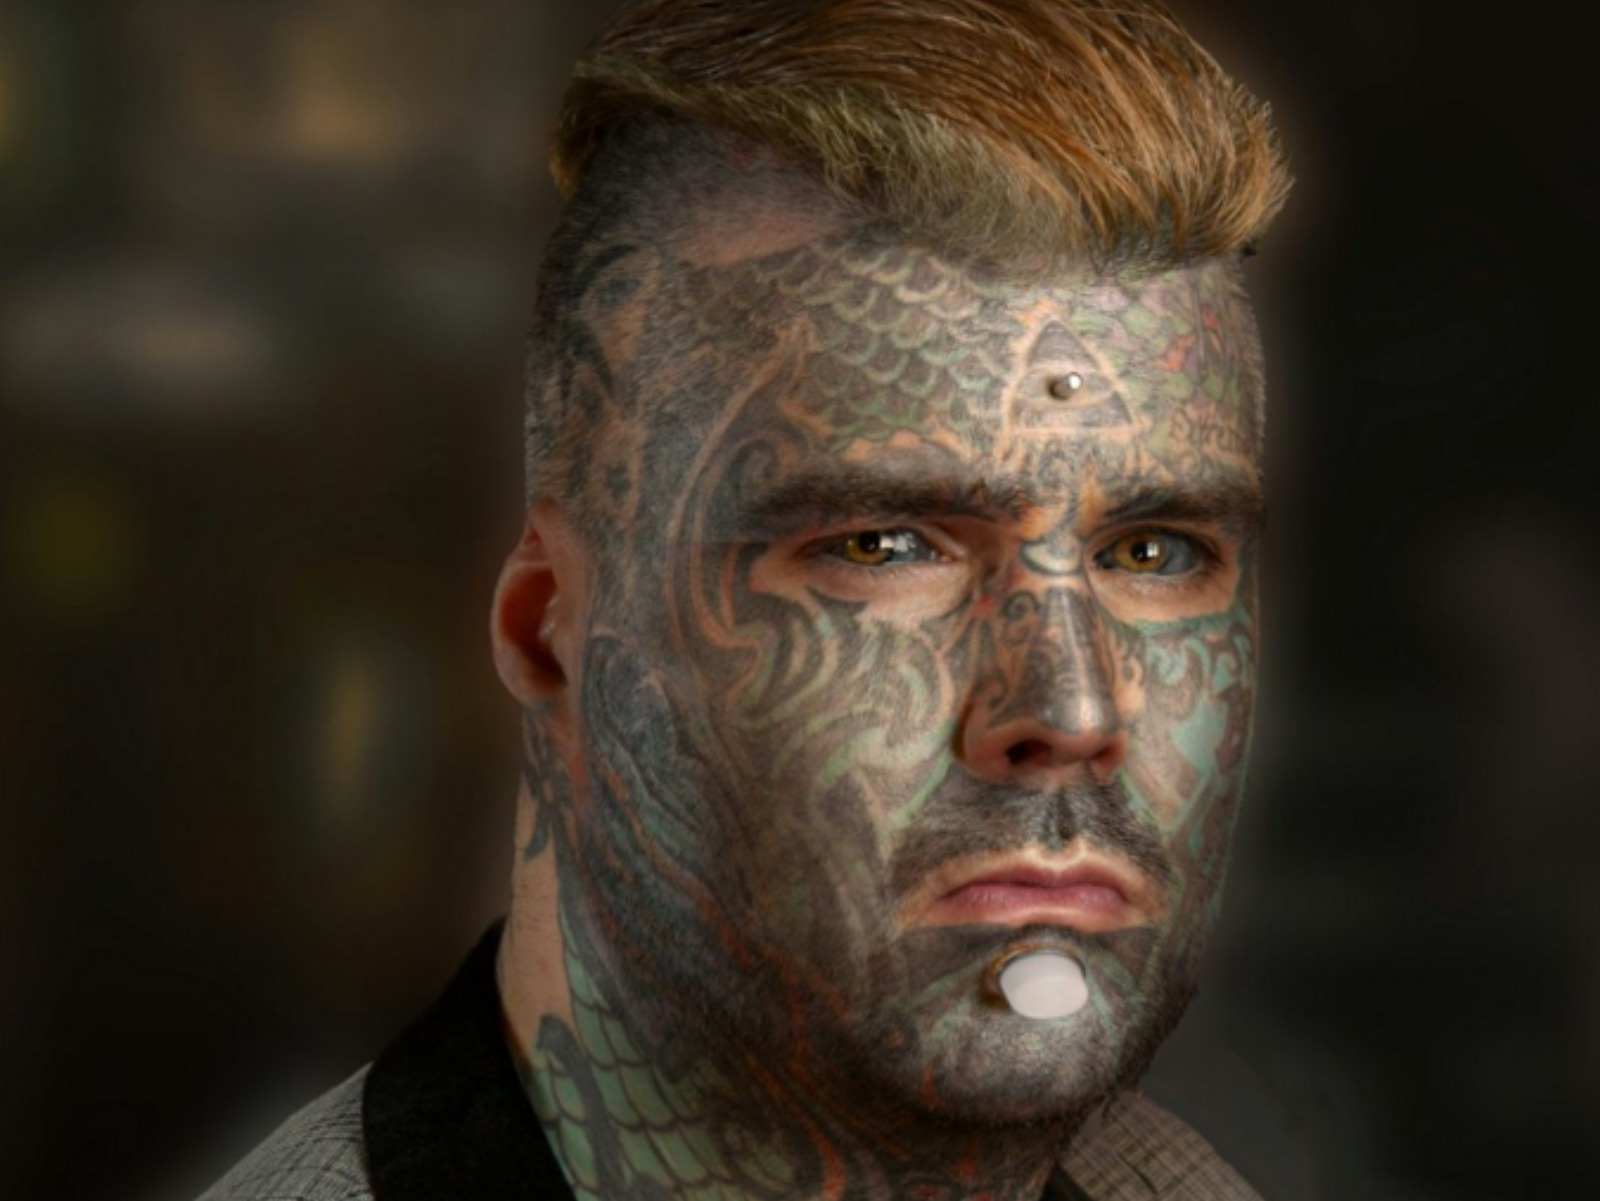 'Most tattooed man in Britain' sets new world record ...